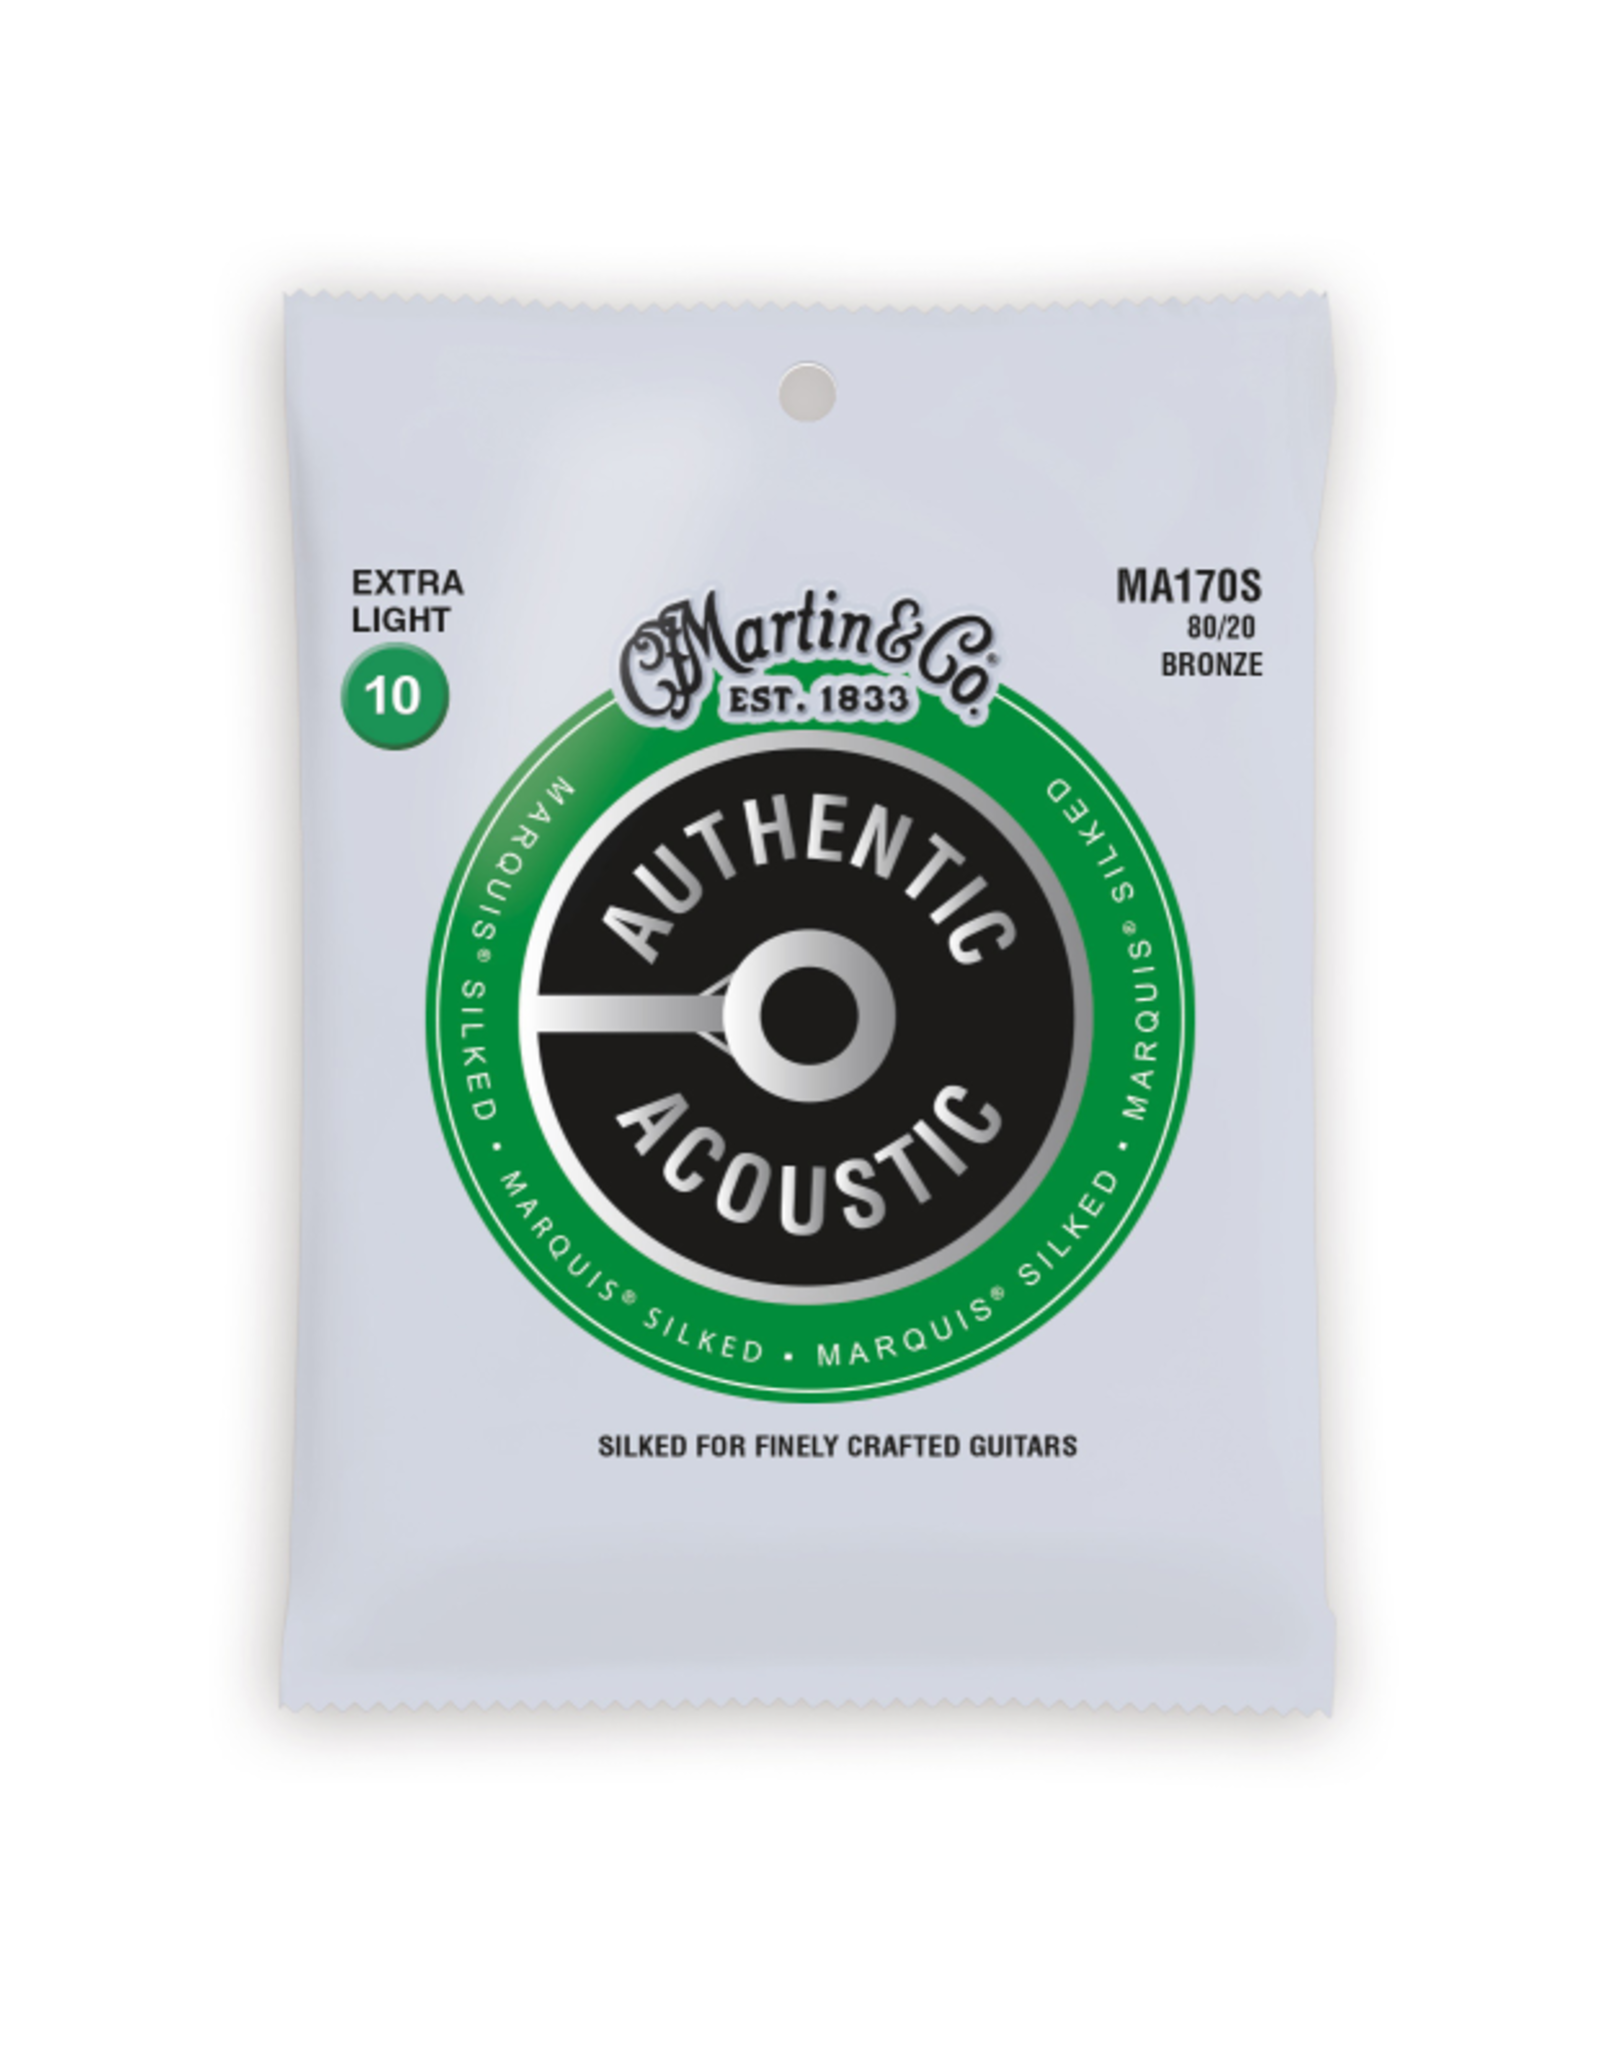 Martin & Co Martin MA170S Authentic Acoustic Marquis Silked 80/20 Bronze Extra Light Guitar Strings. 10-47